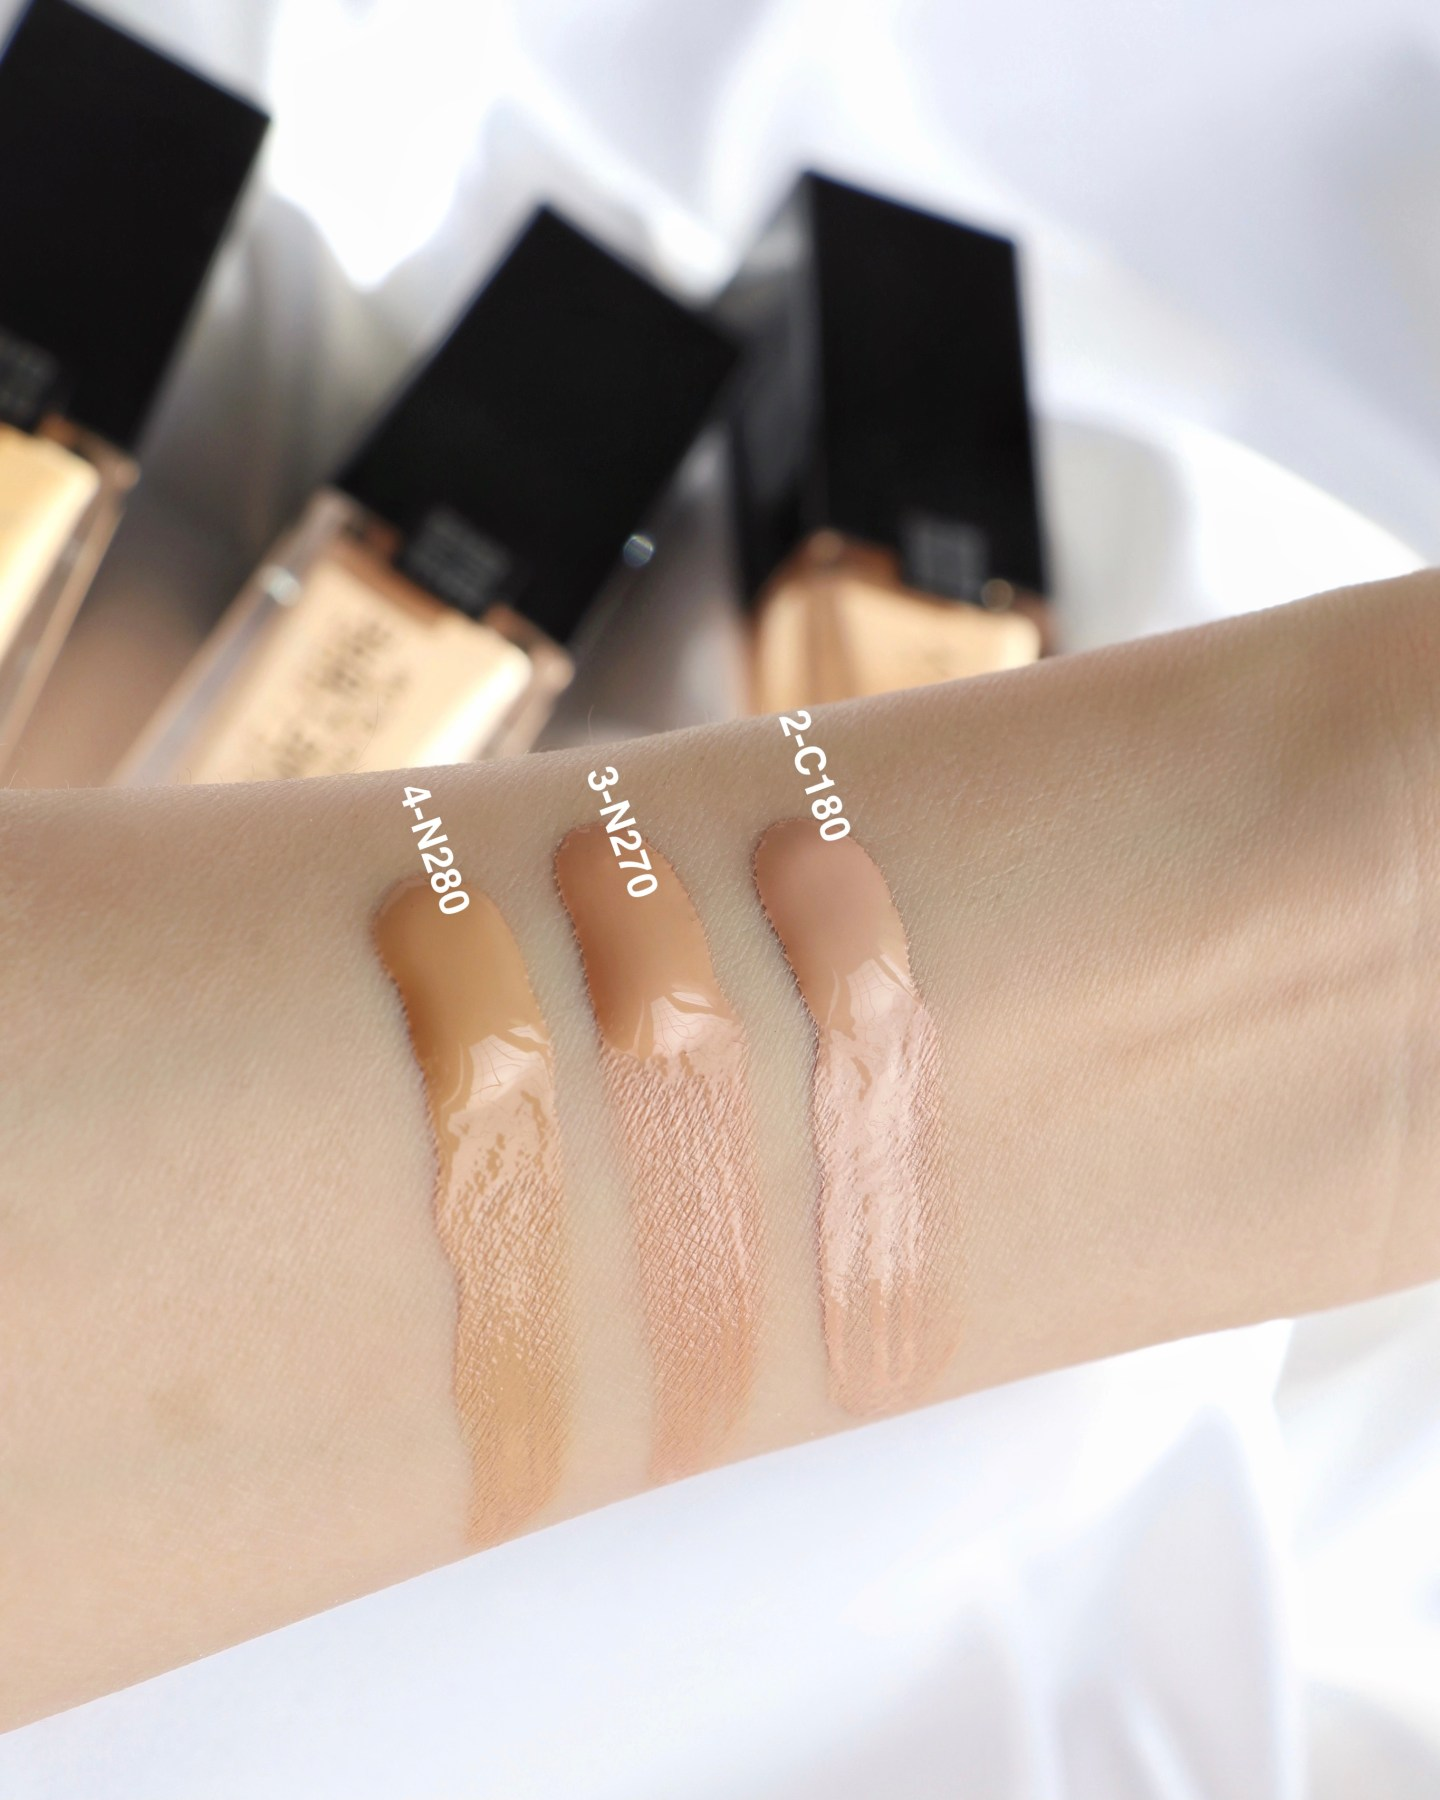 Givenchy Prisme Libre Skin-Caring Glow Foundation Review